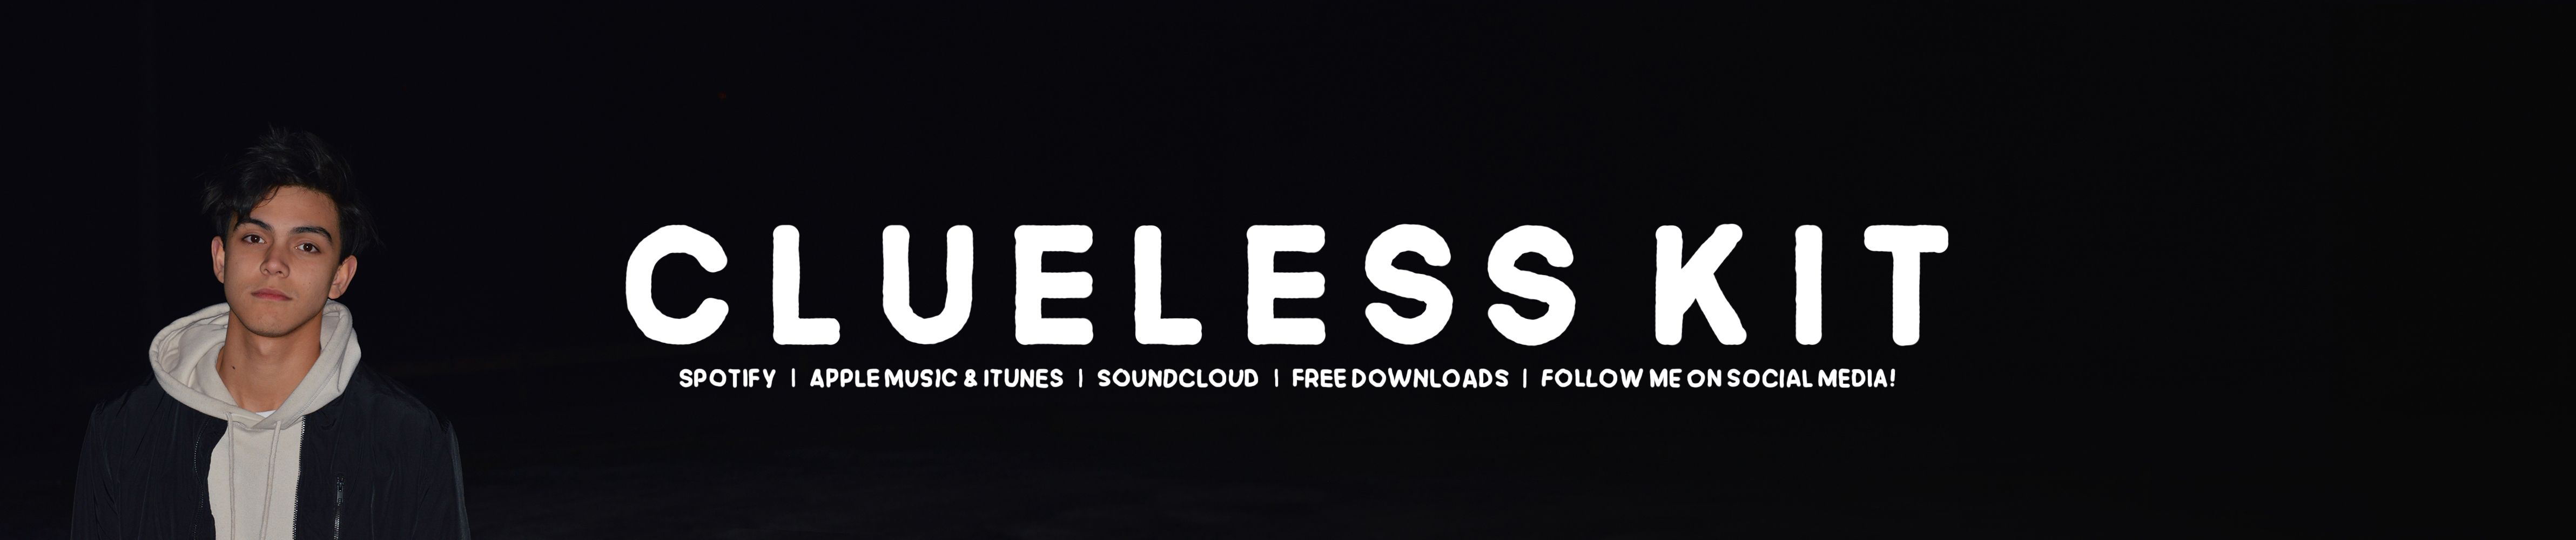 Clueless Kit Free Listening On Soundcloud